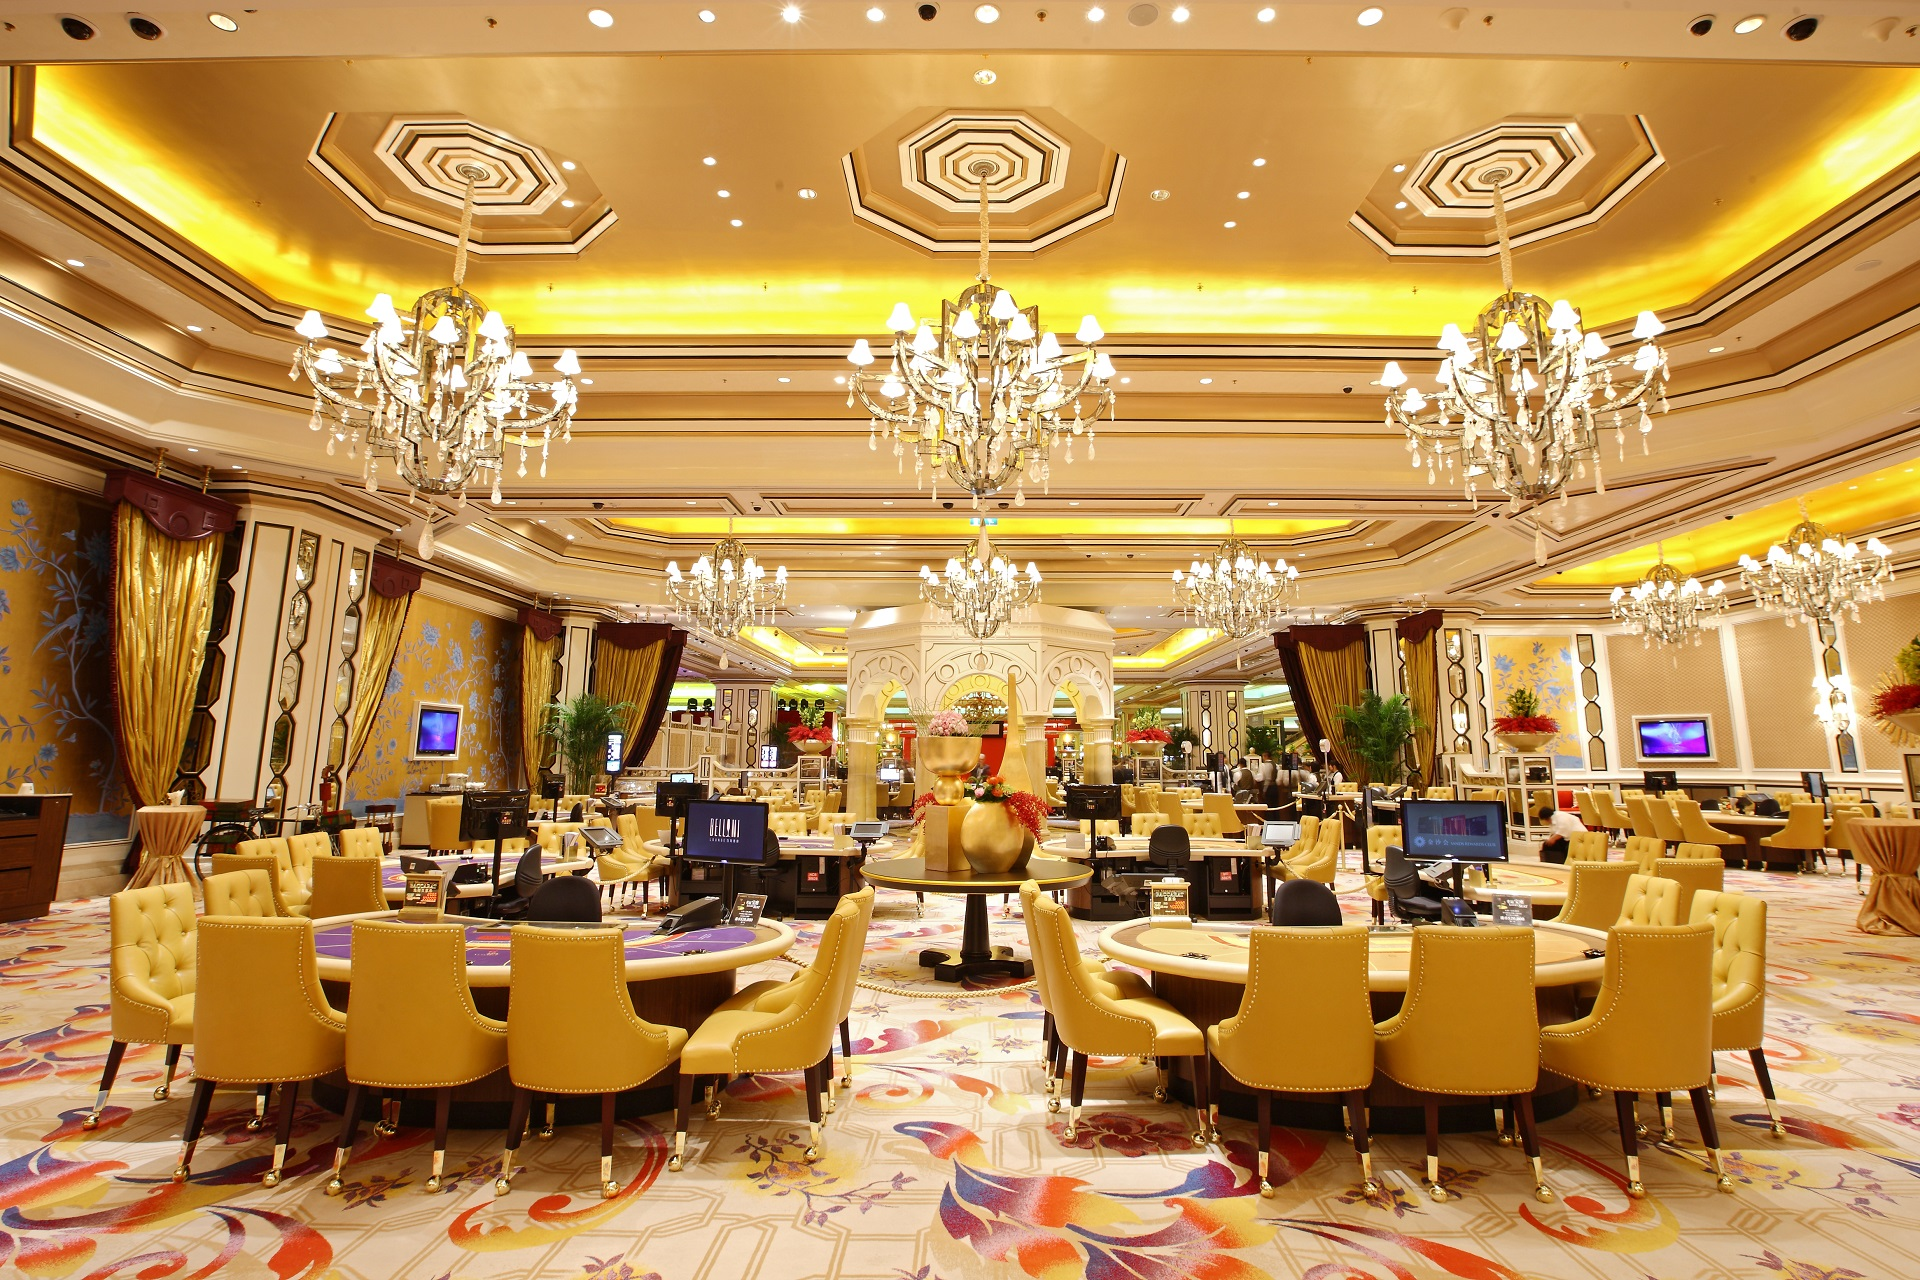 Casino In Macao Wallpapers High Quality | Download Free